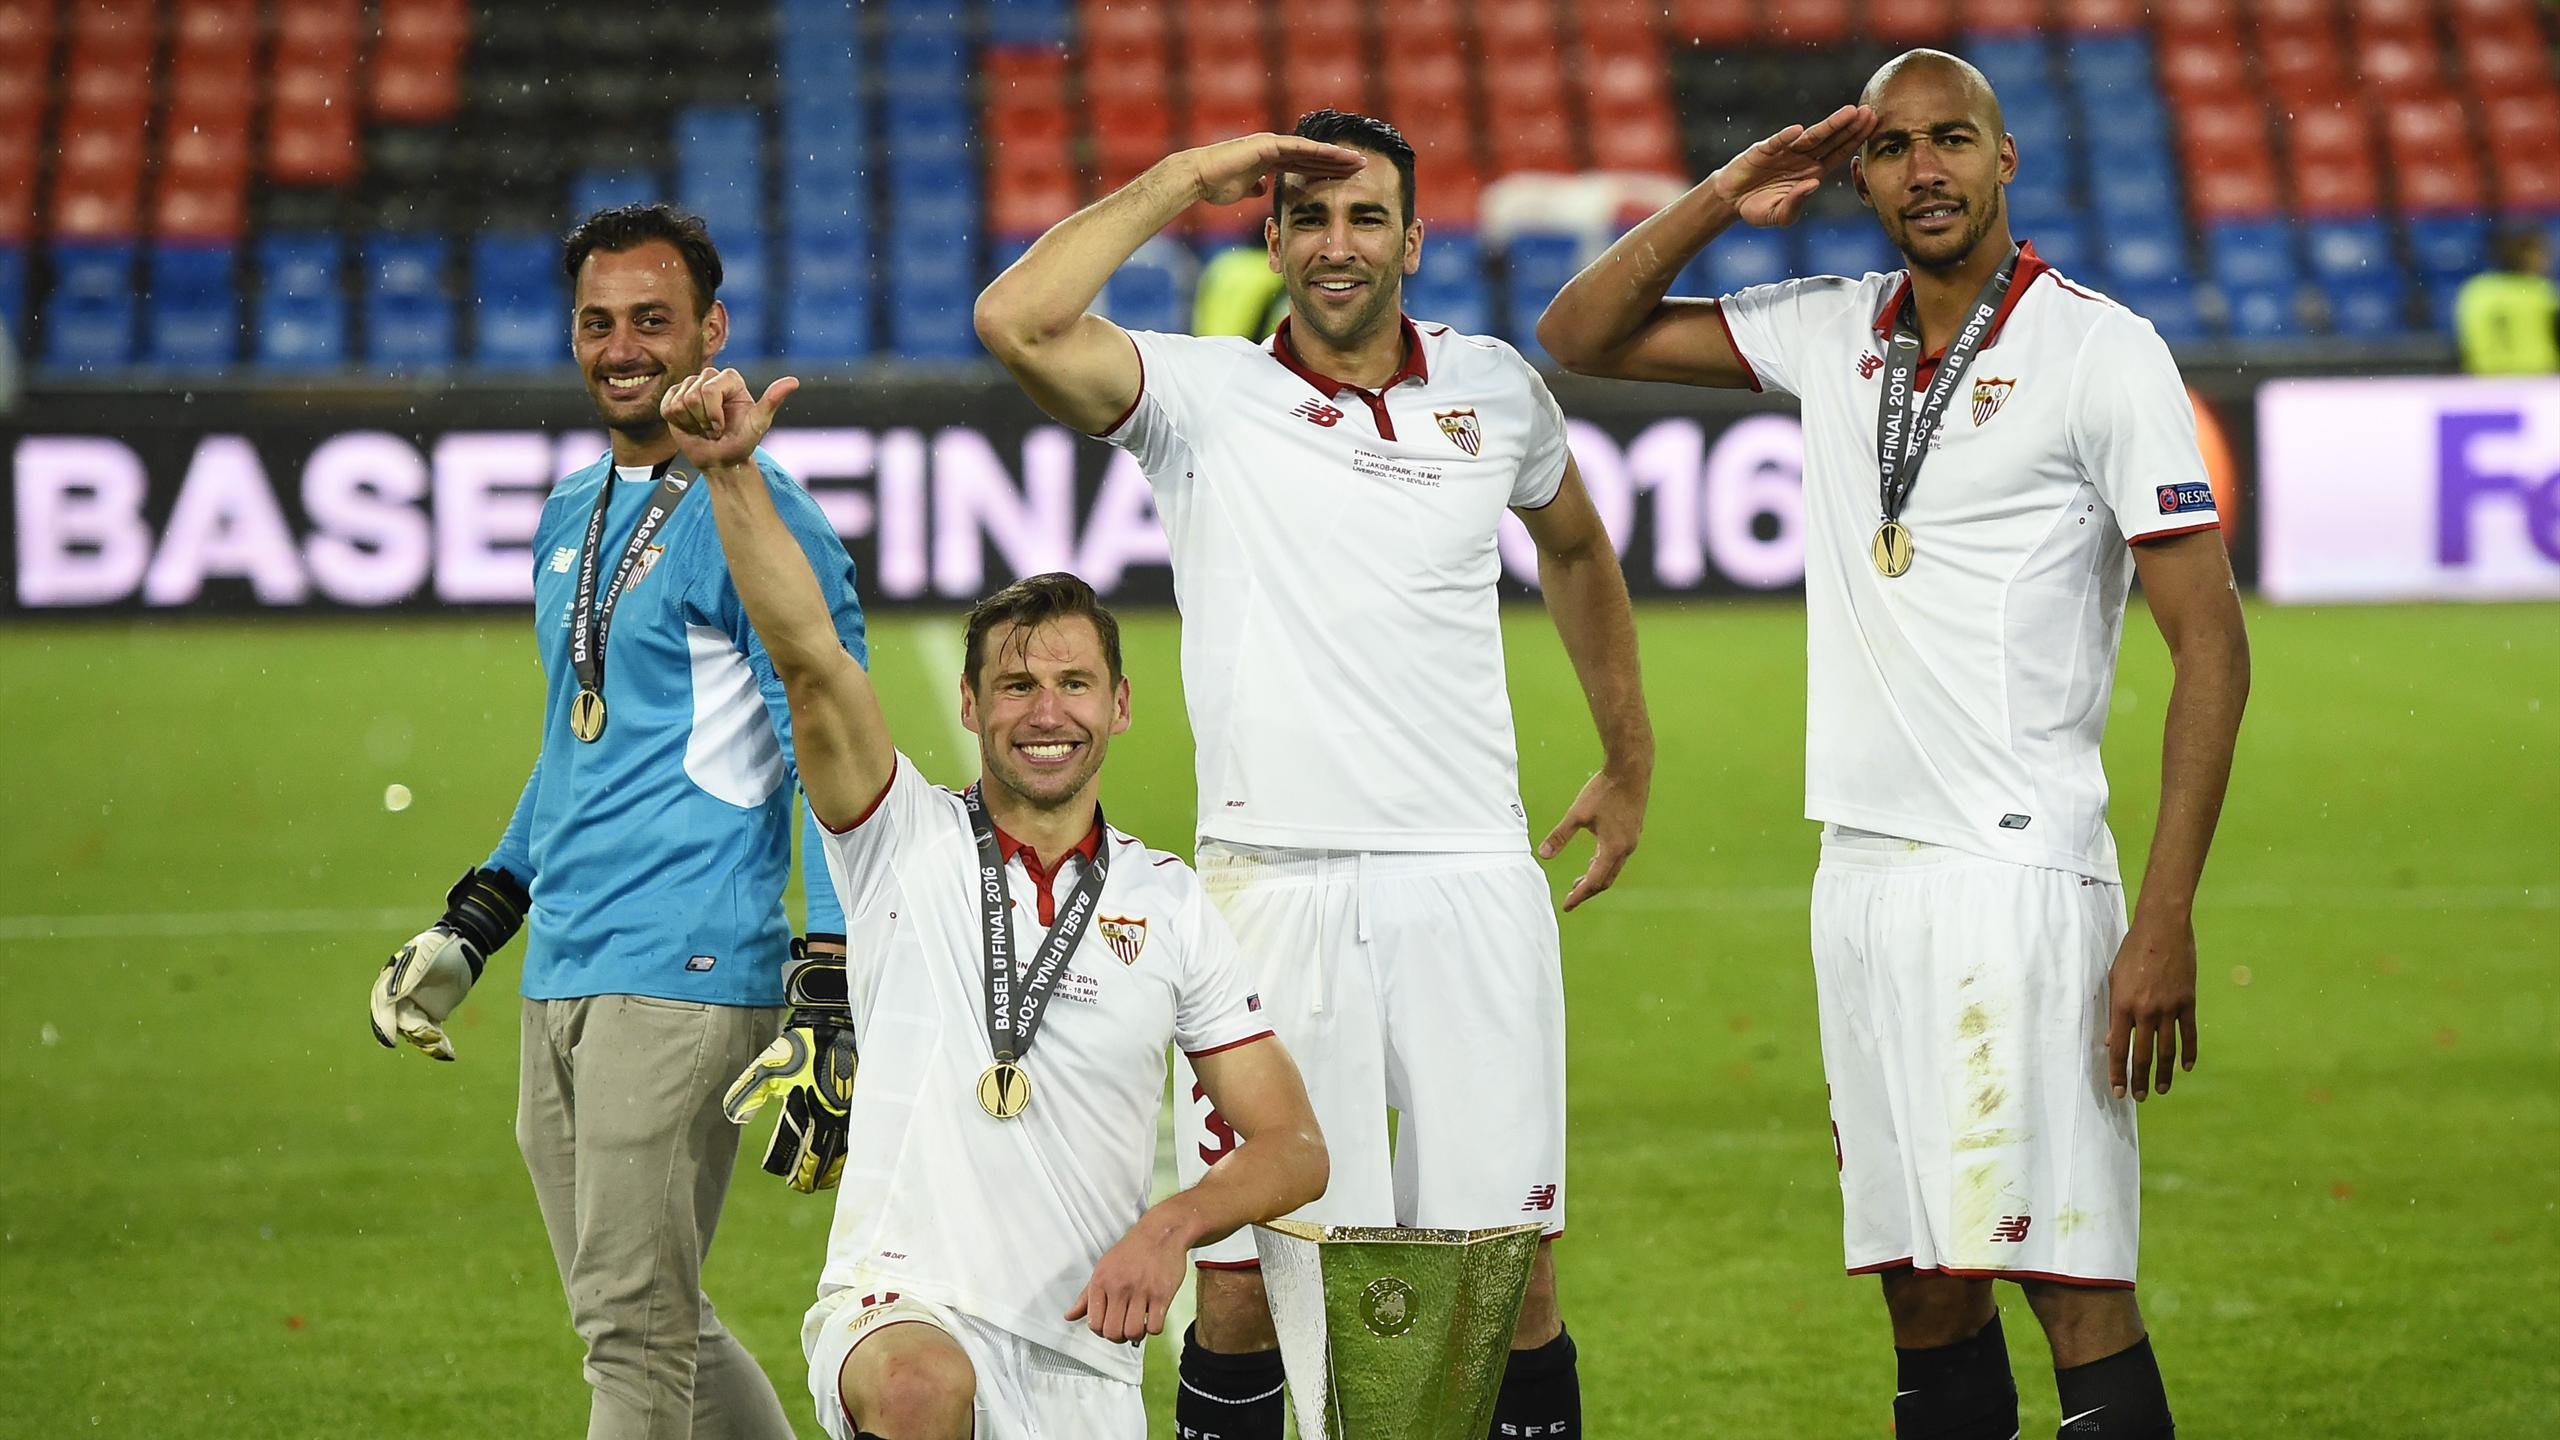 Sevilla's Beto, Grzegorz Krychowiak, Adil Rami and Steven N'Zonzi celebrate with the trophy after winning the UEFA Europa League Final